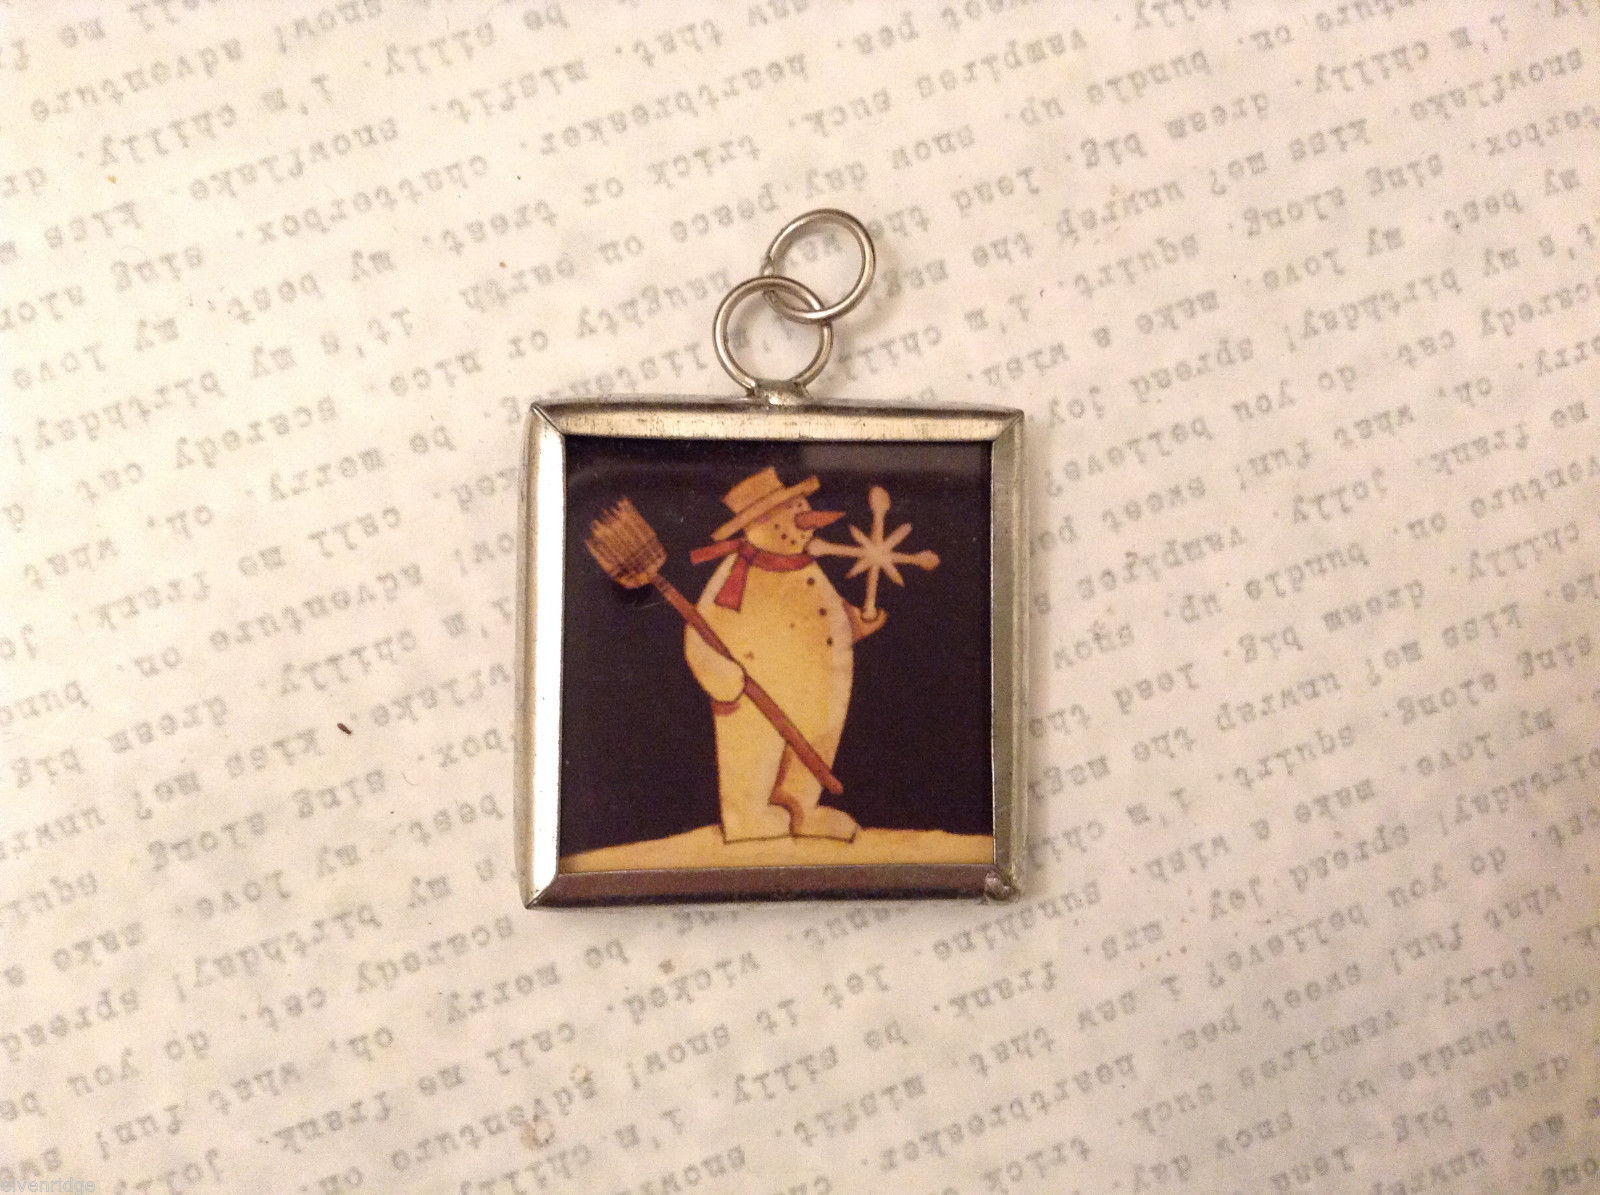 2 sided charm tag in metal frame vintage style -Snowman w. broom /Snowman w.tree